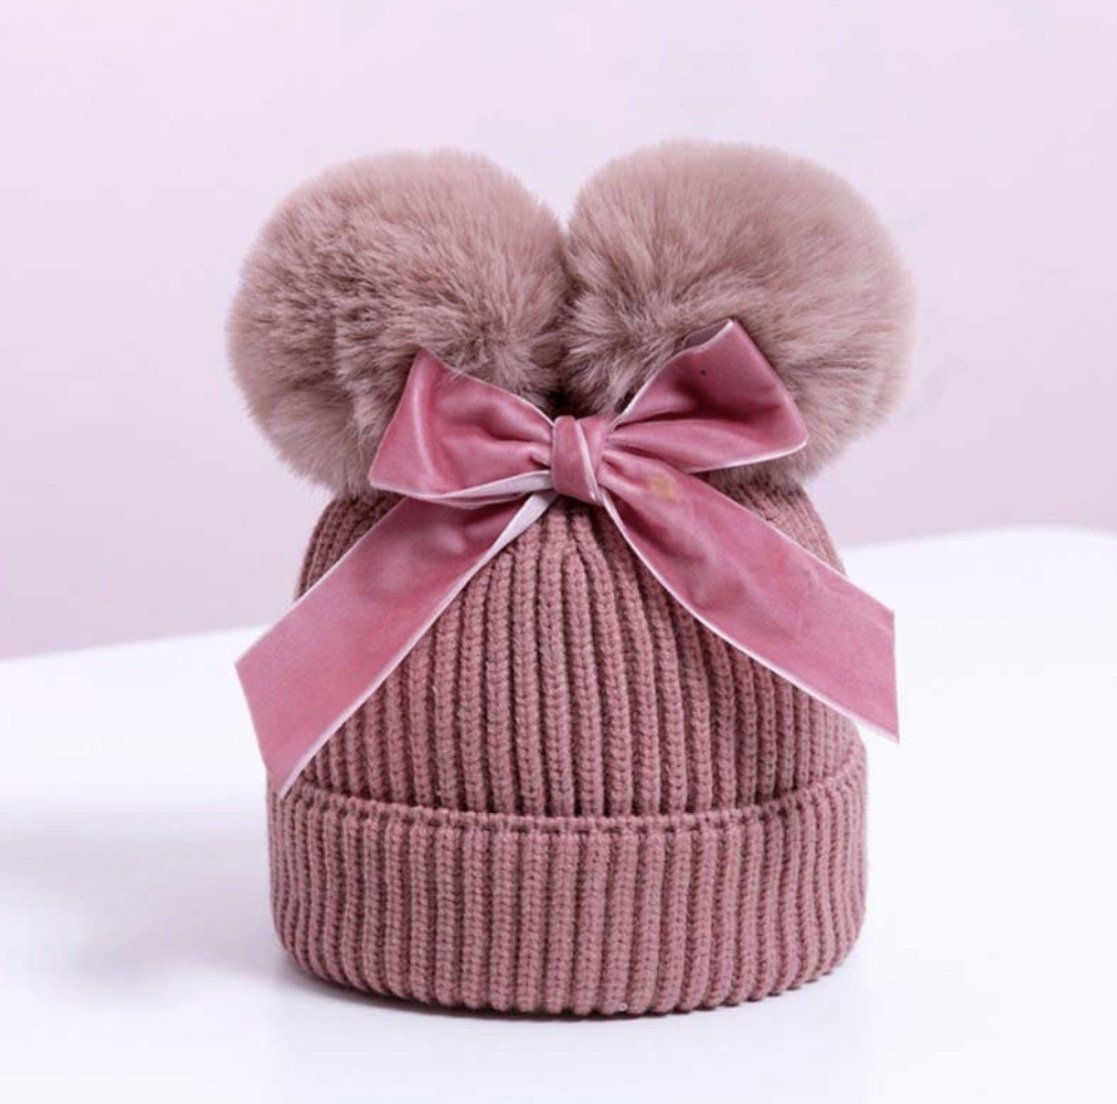 Photo of Baby Girl Knitted Pom Pom Hat, Baby Girl Warm Winter Hat (One Size 6M-24M)